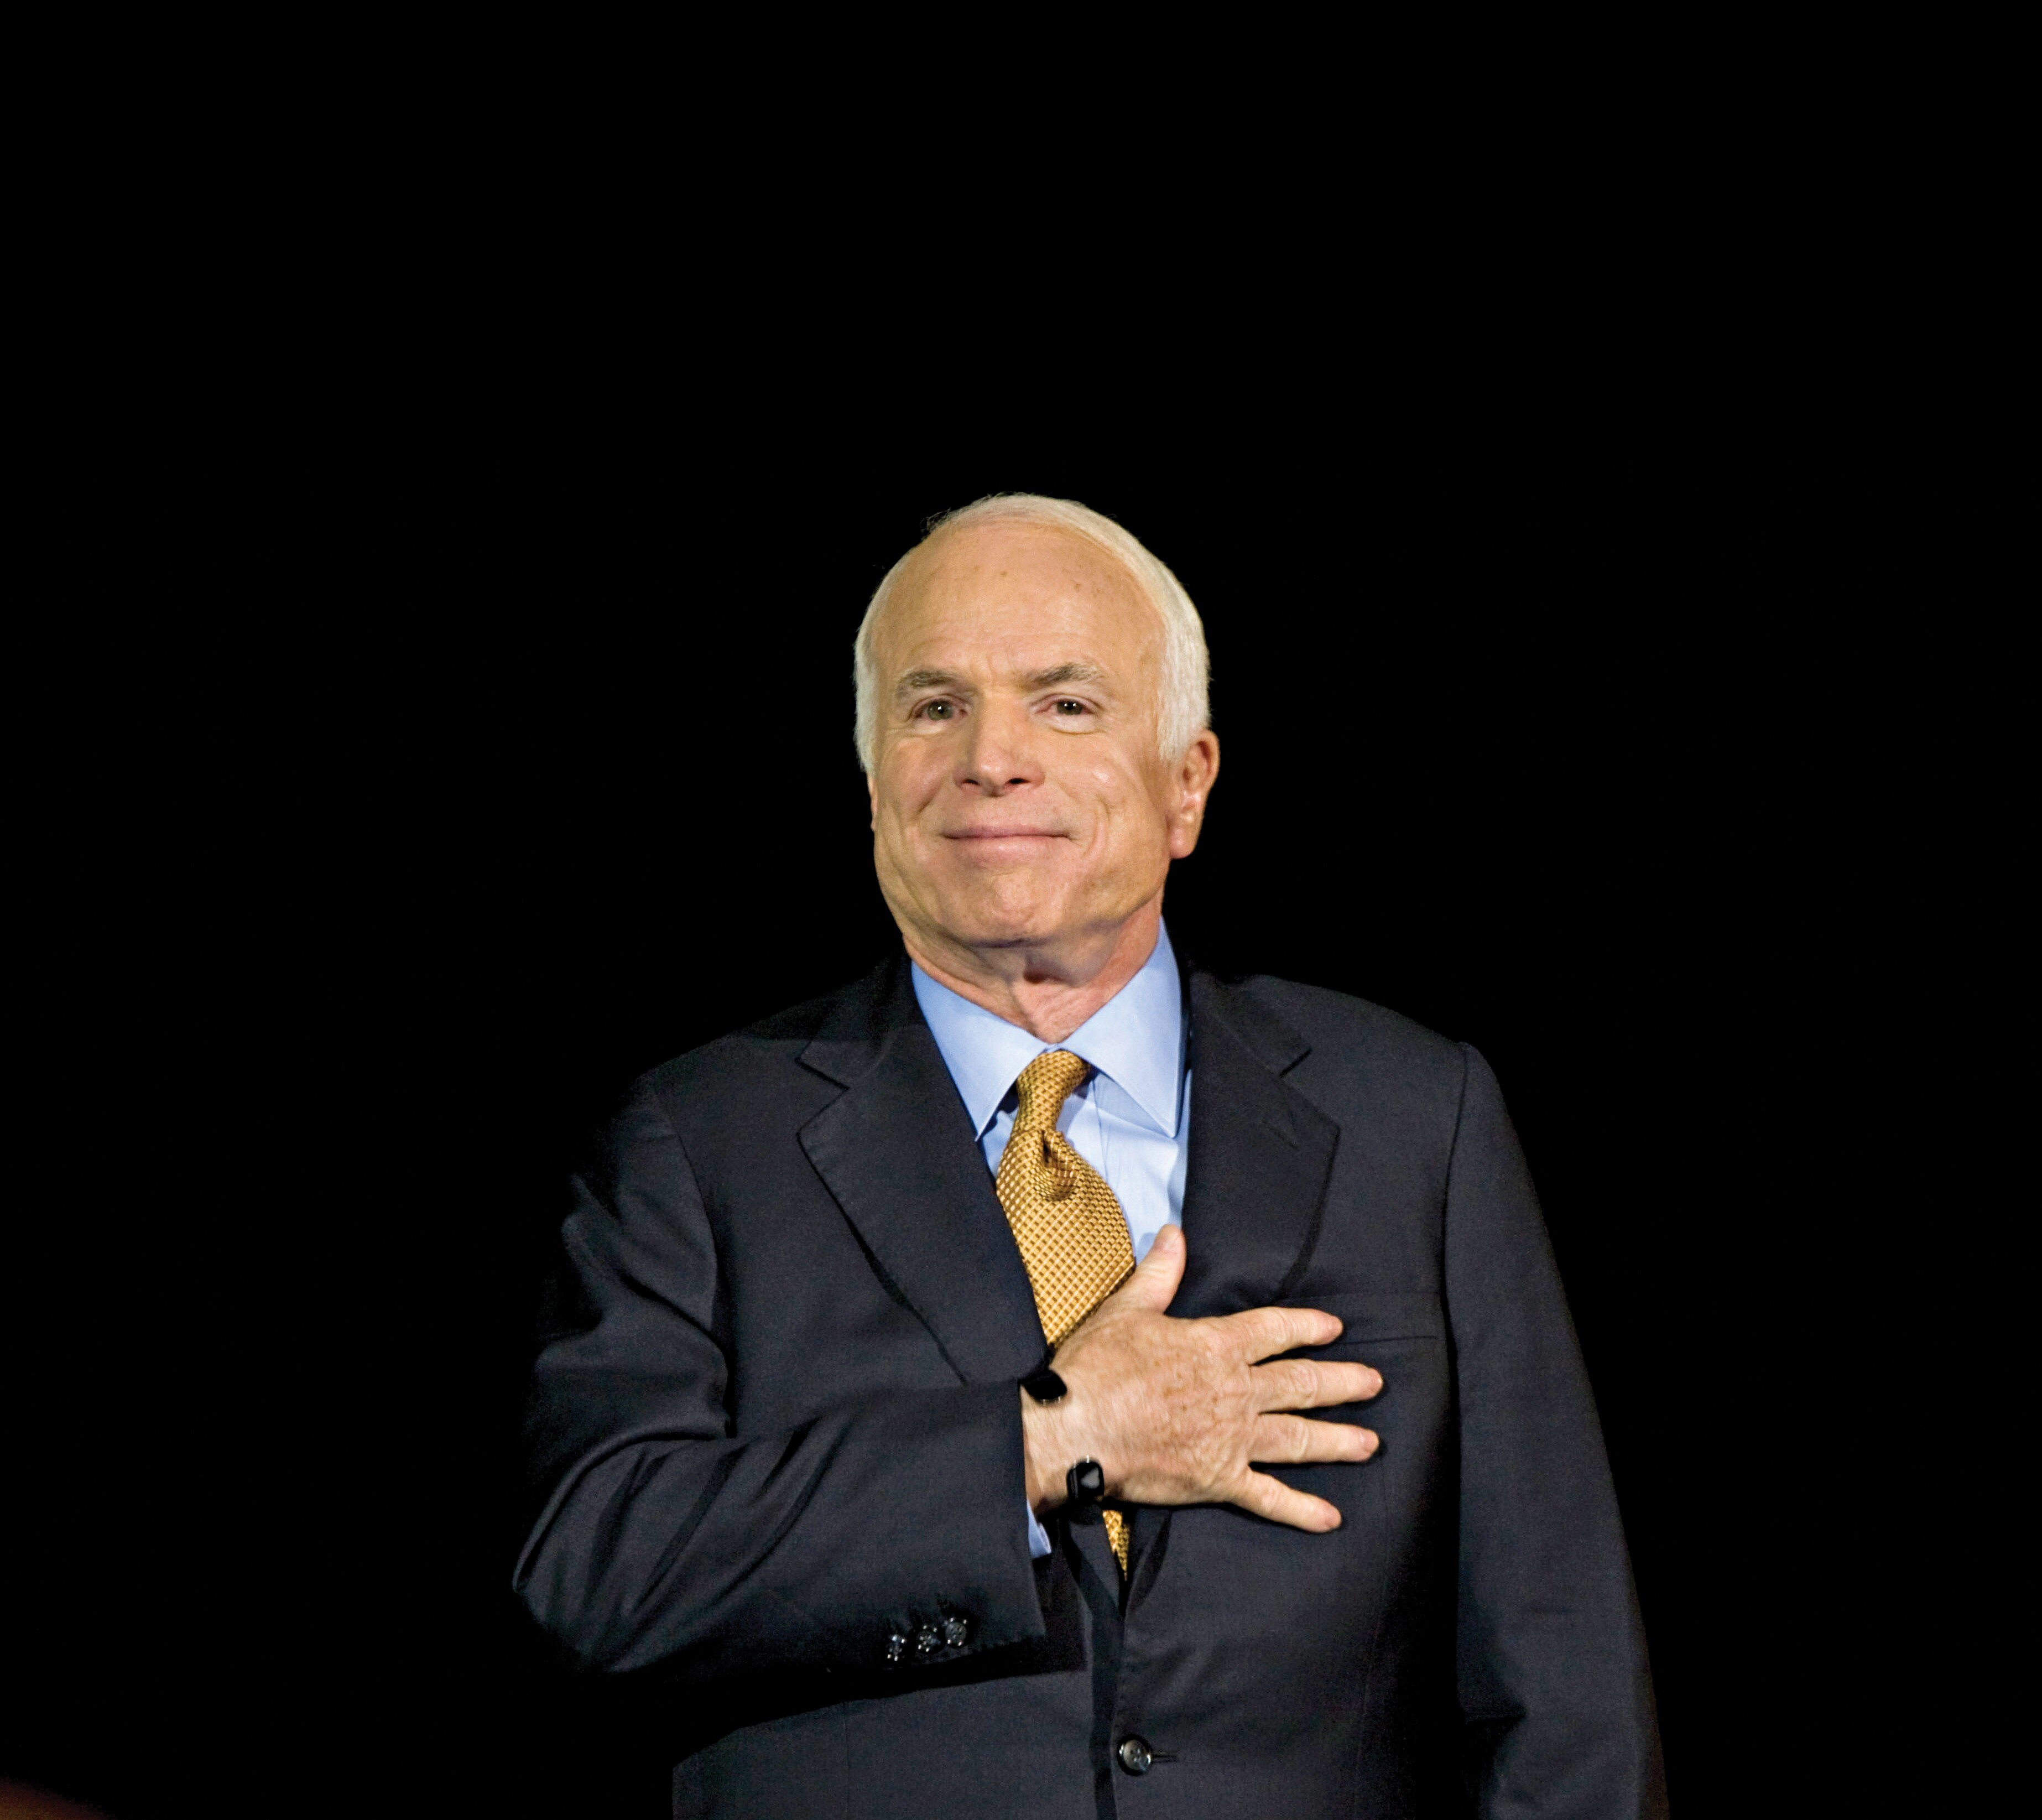 Andrew Mccain: John McCain: How His Critics, Right And Left, United In